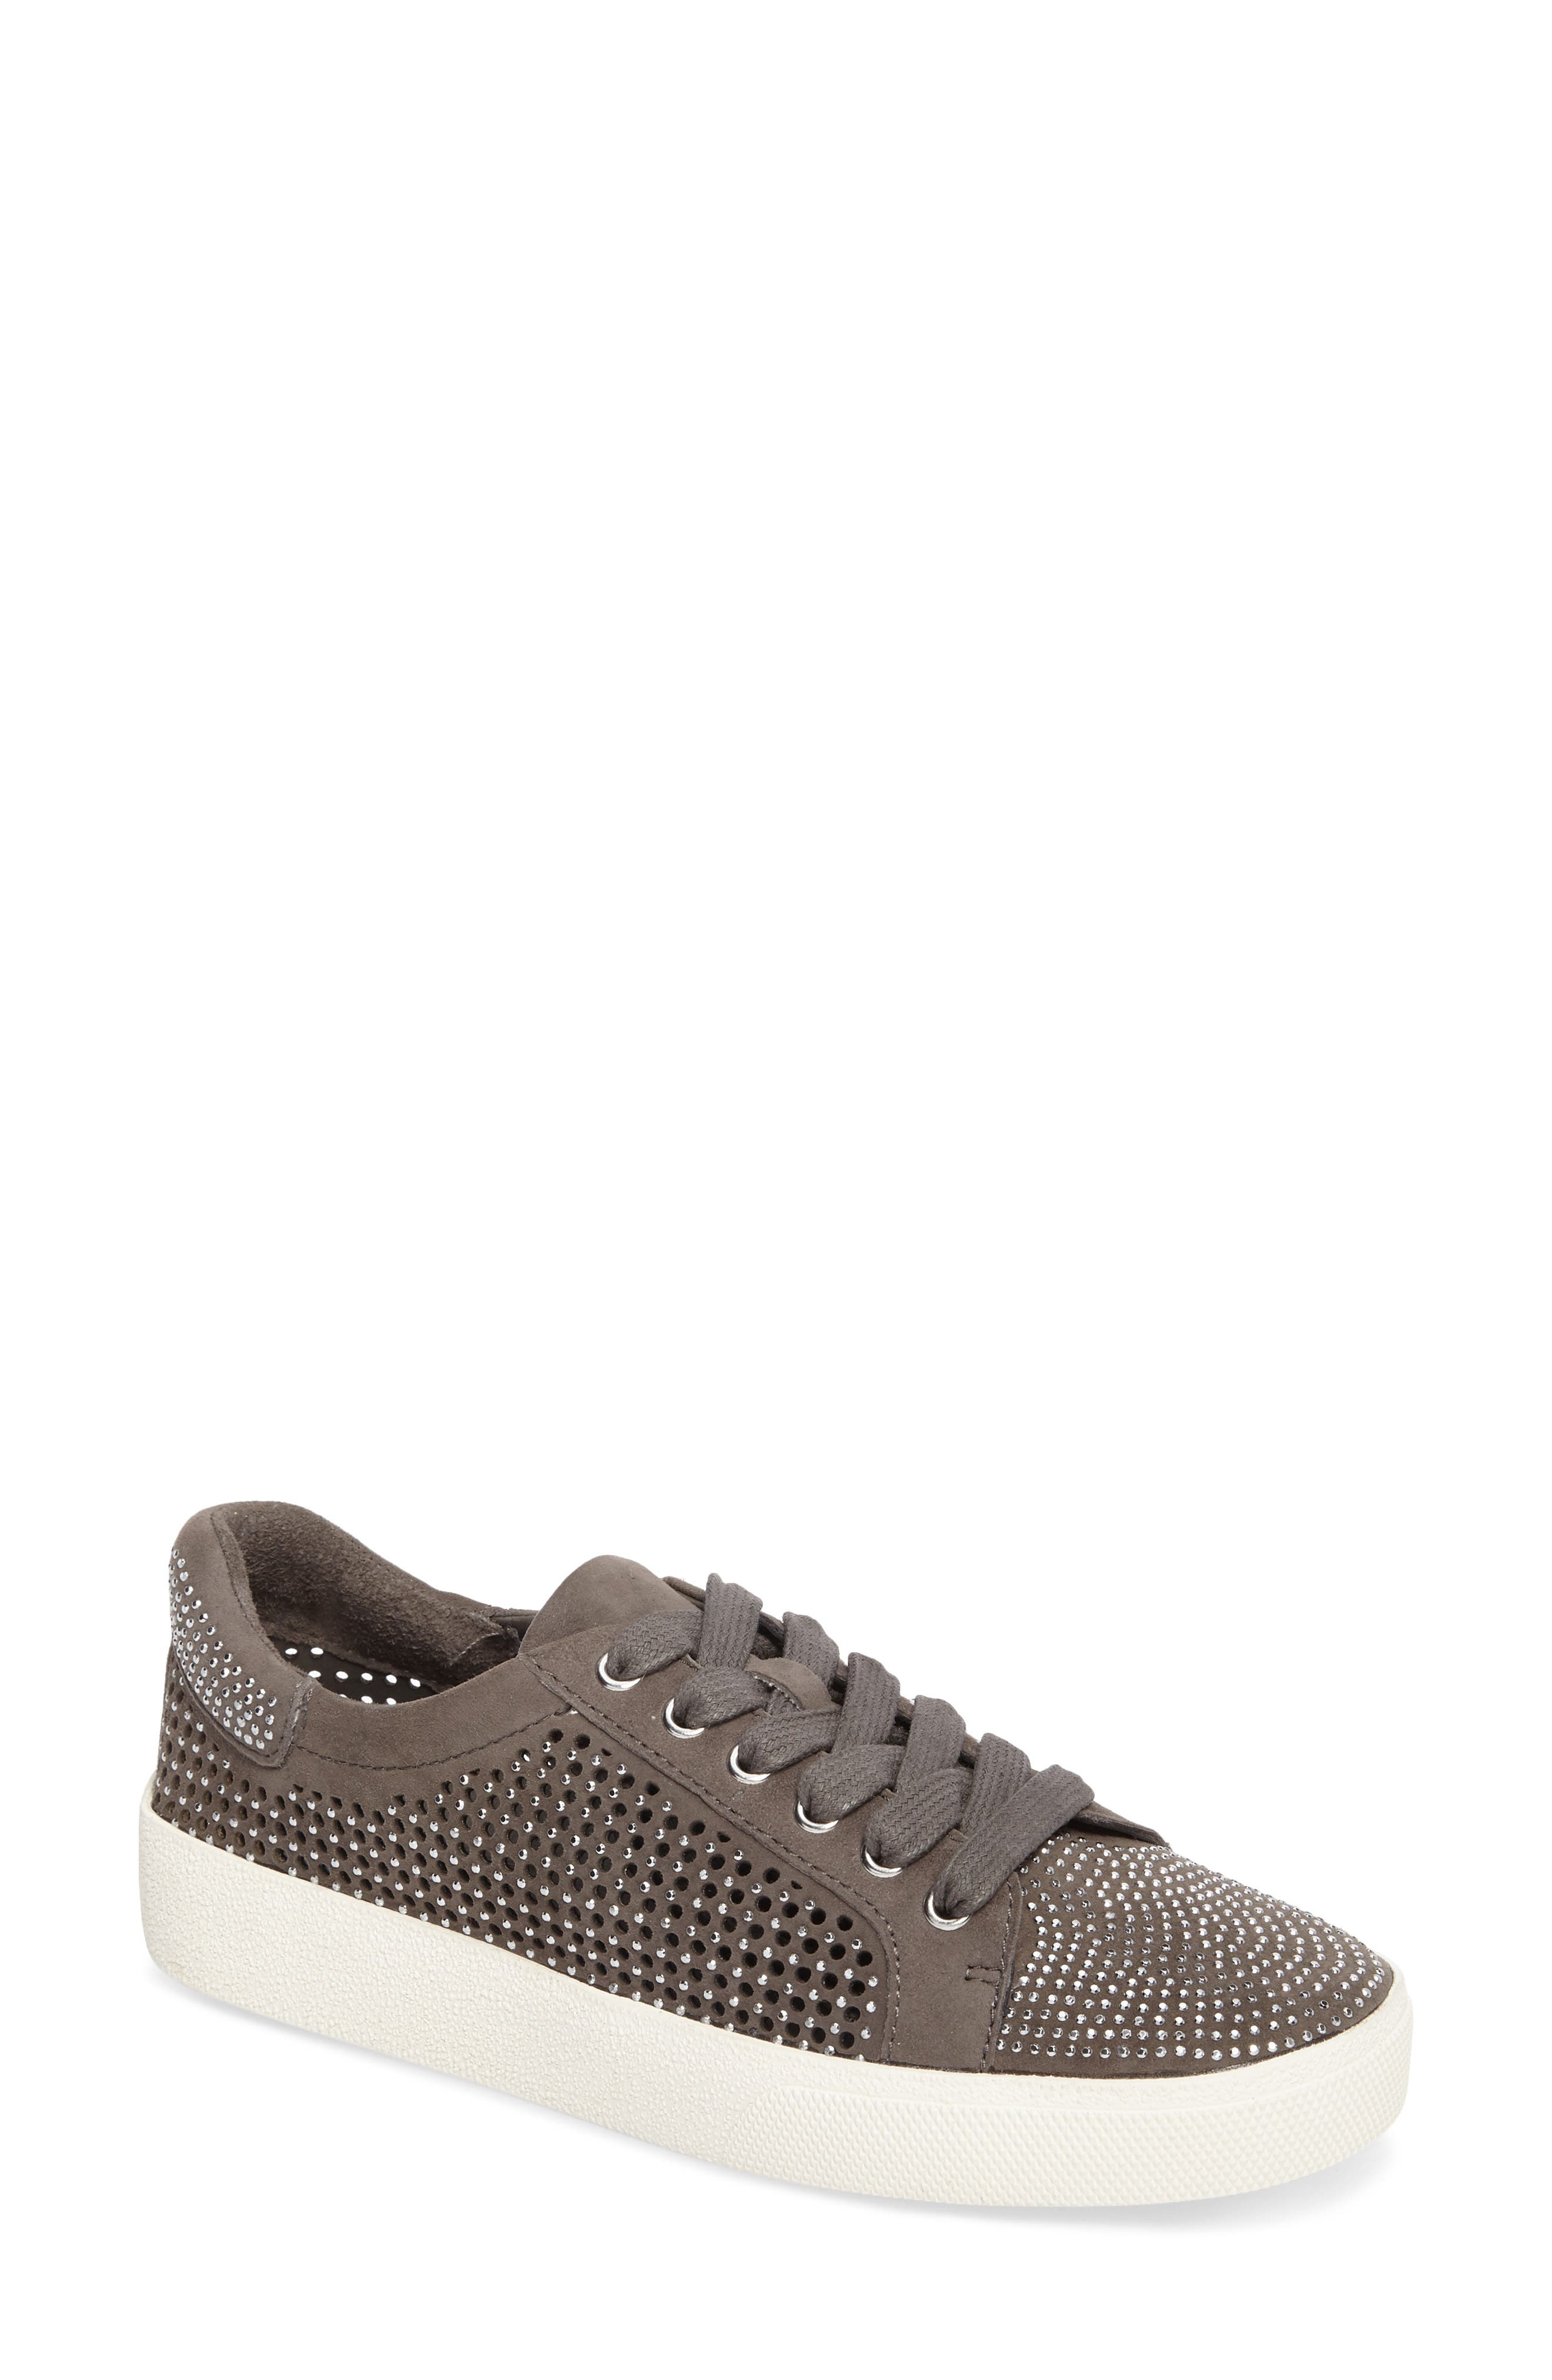 Alternate Image 1 Selected - Vince Camuto Chenta Sneaker (Women)